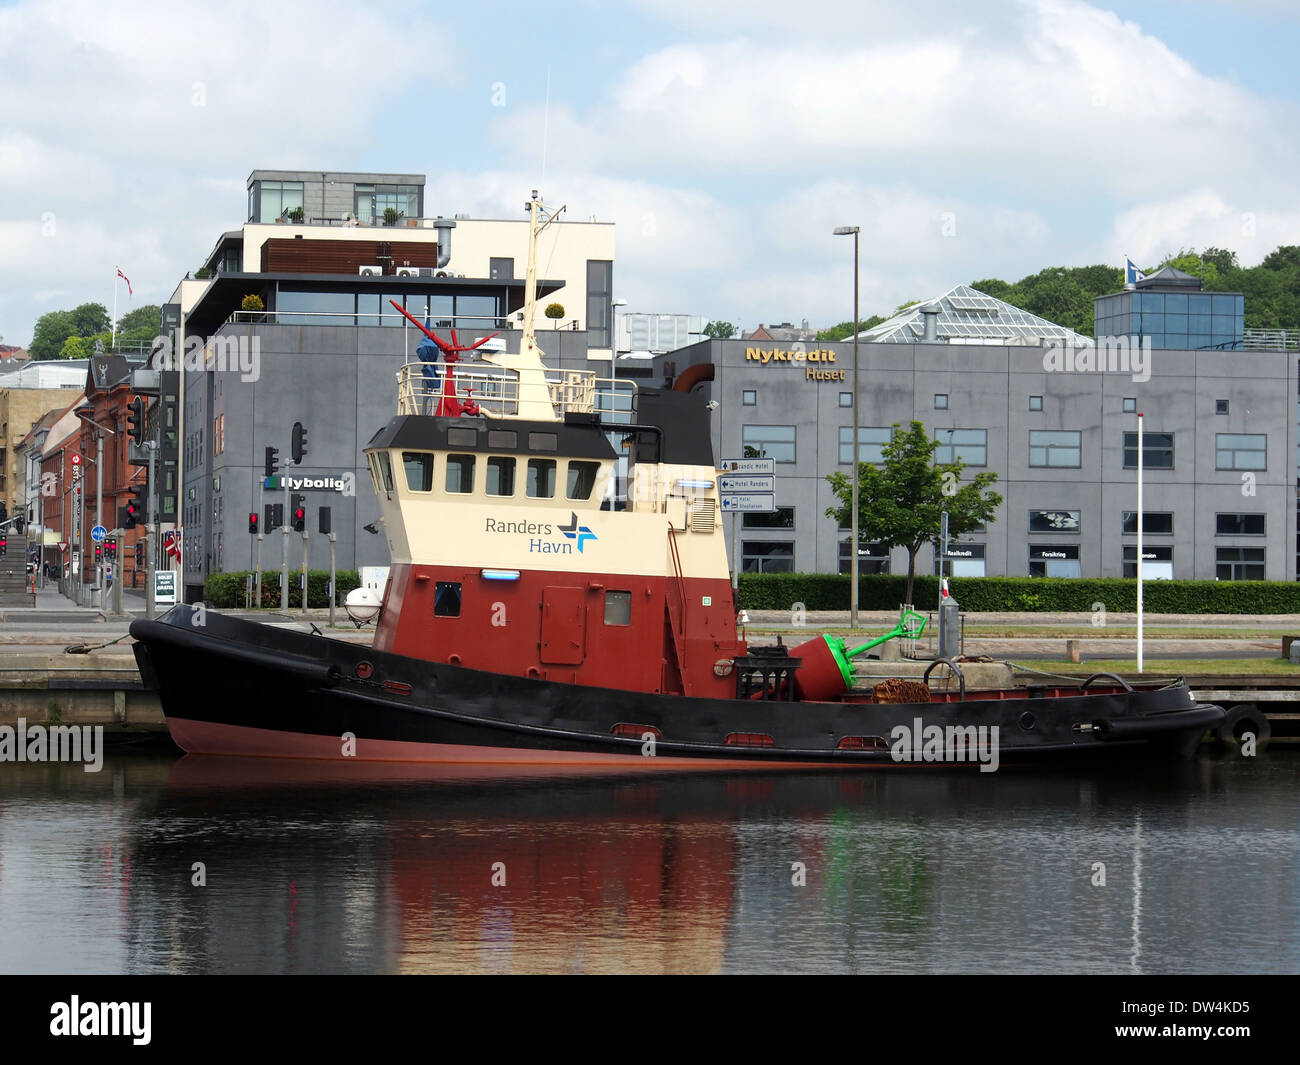 Name: Jens Ove Callsign: OUXP LOA: 19,50 meters Breadth: 5,i80 meters Buildt: Assens Skibsværft (305) 1981 Grosstonnage: 60 tons M/E: B&W Alpha 640 kW, 10 kn Owner: Port of Randers Jens Ove at Randers harbor pic1 - Stock Image